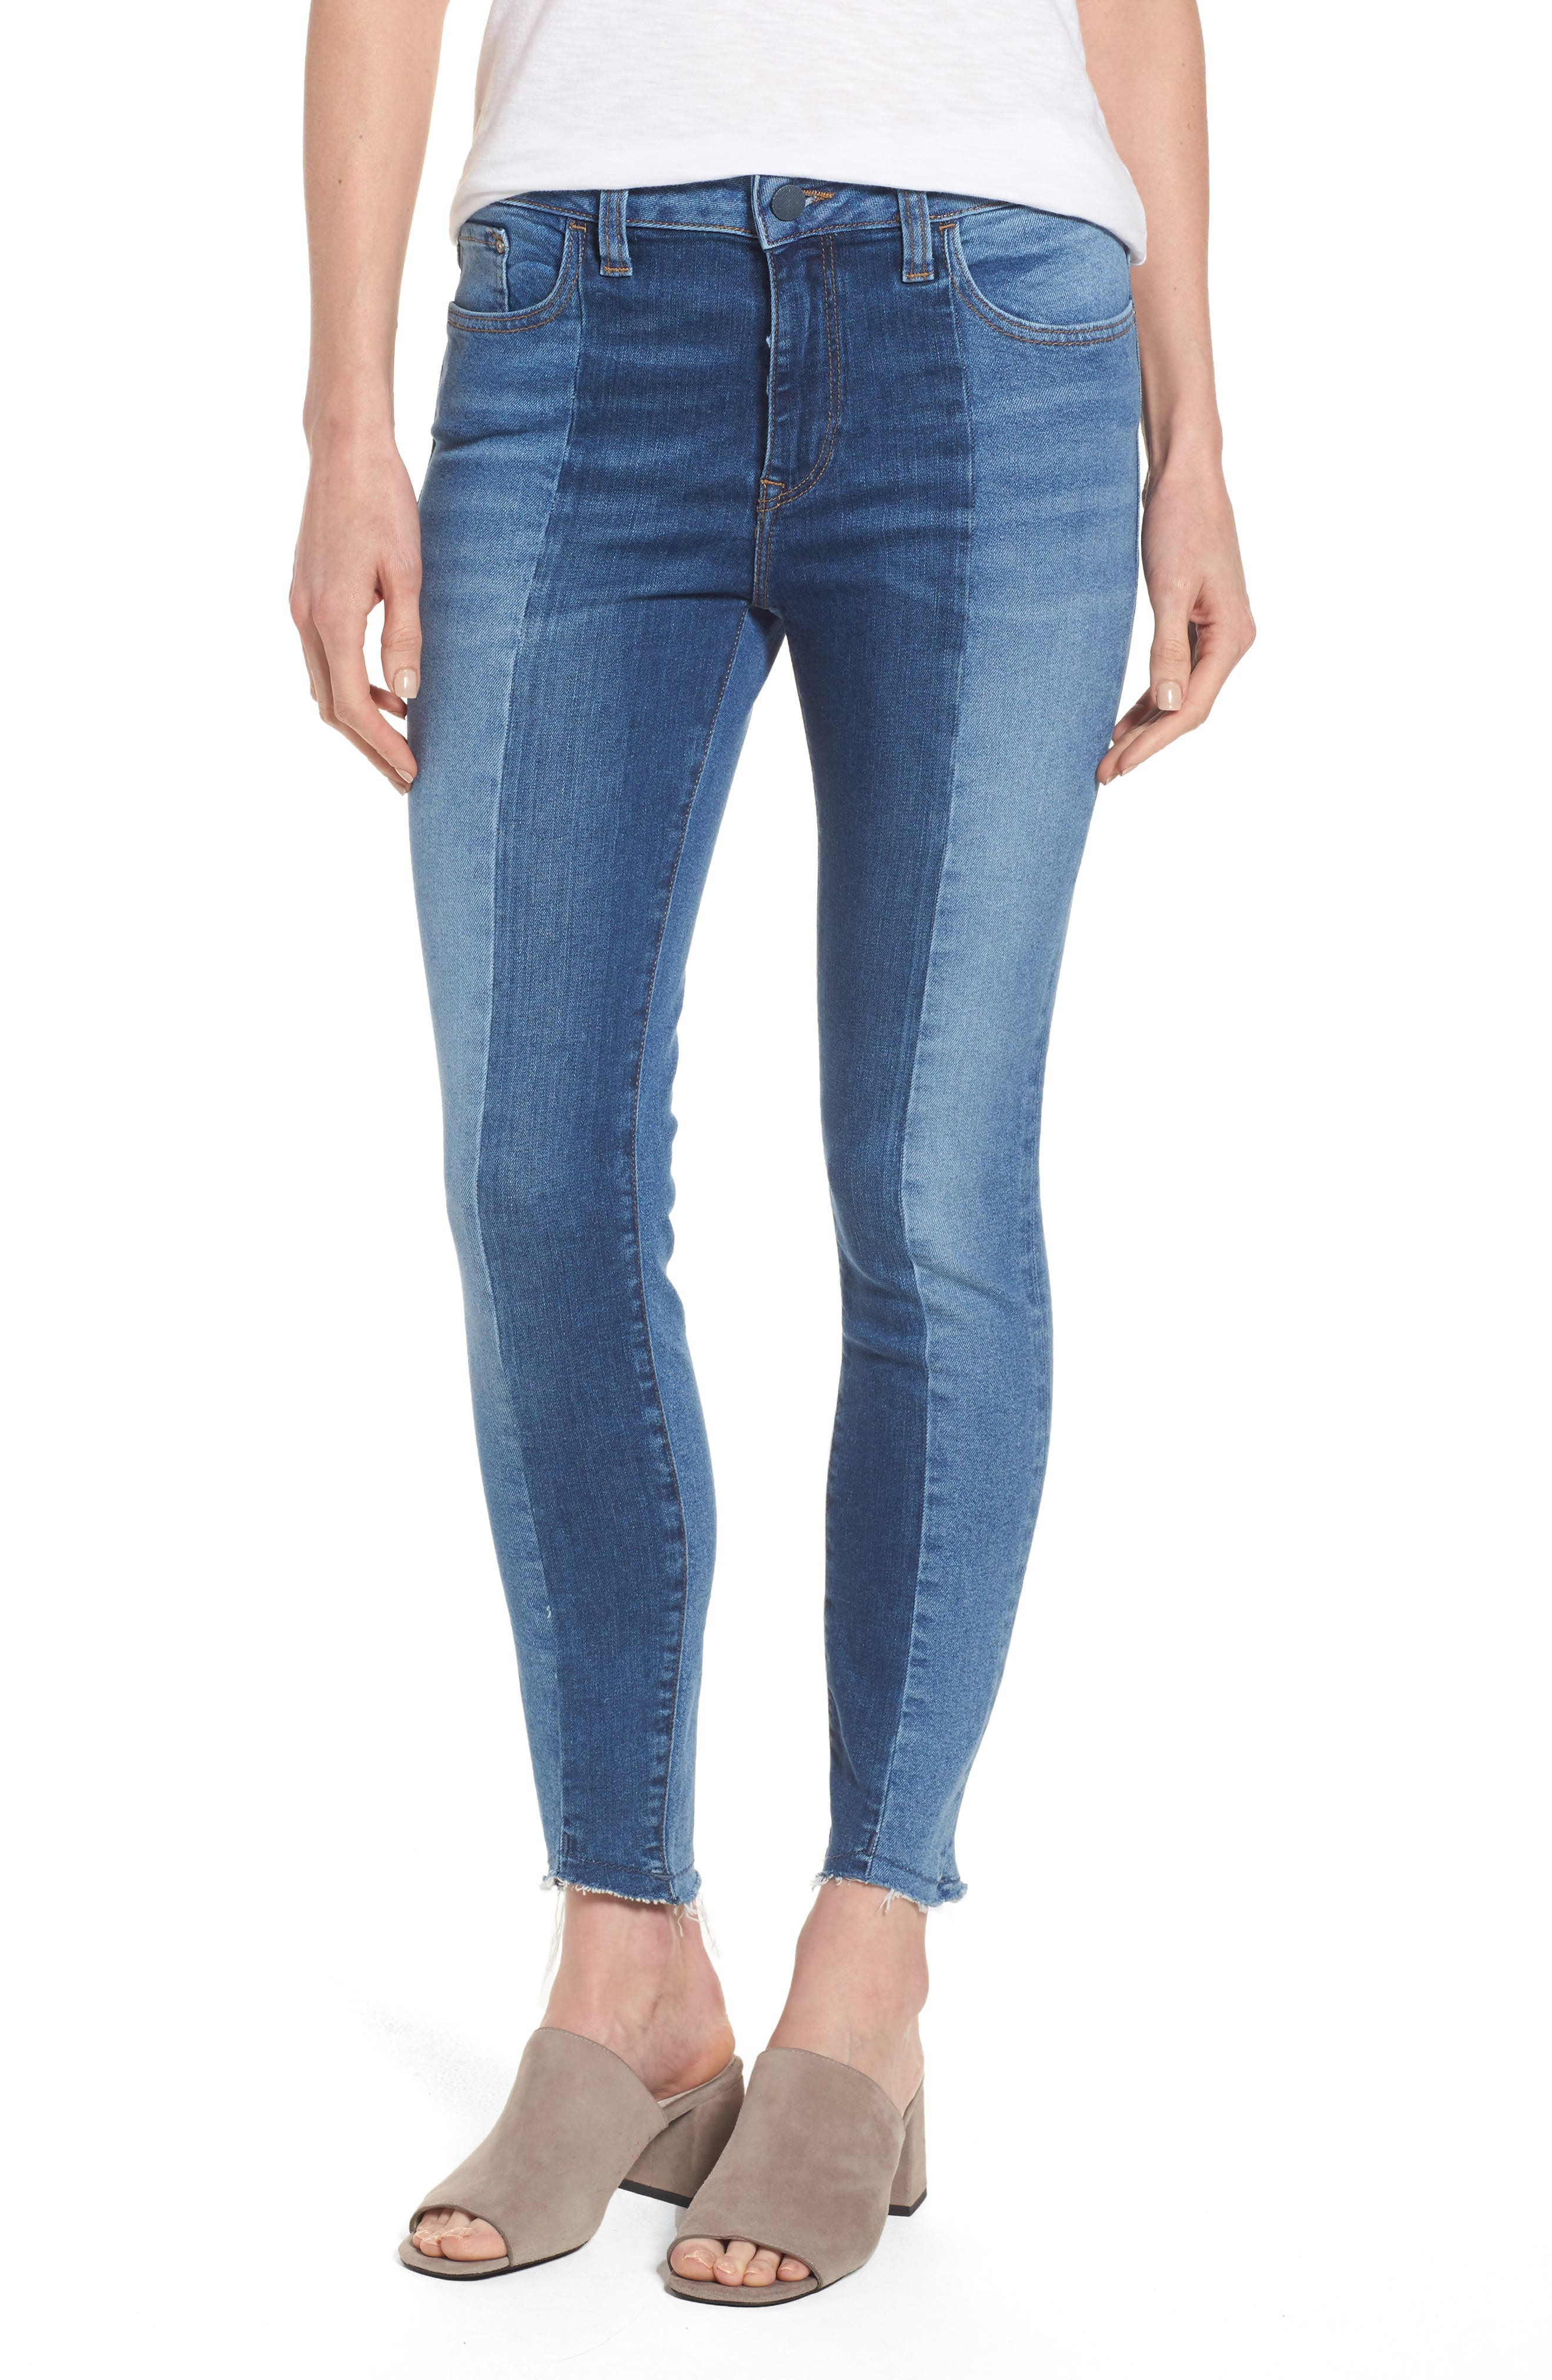 Tess Blocked Super Skinny Jeans,                         Main,                         color, Mid Shaded Blocking Gold Icon